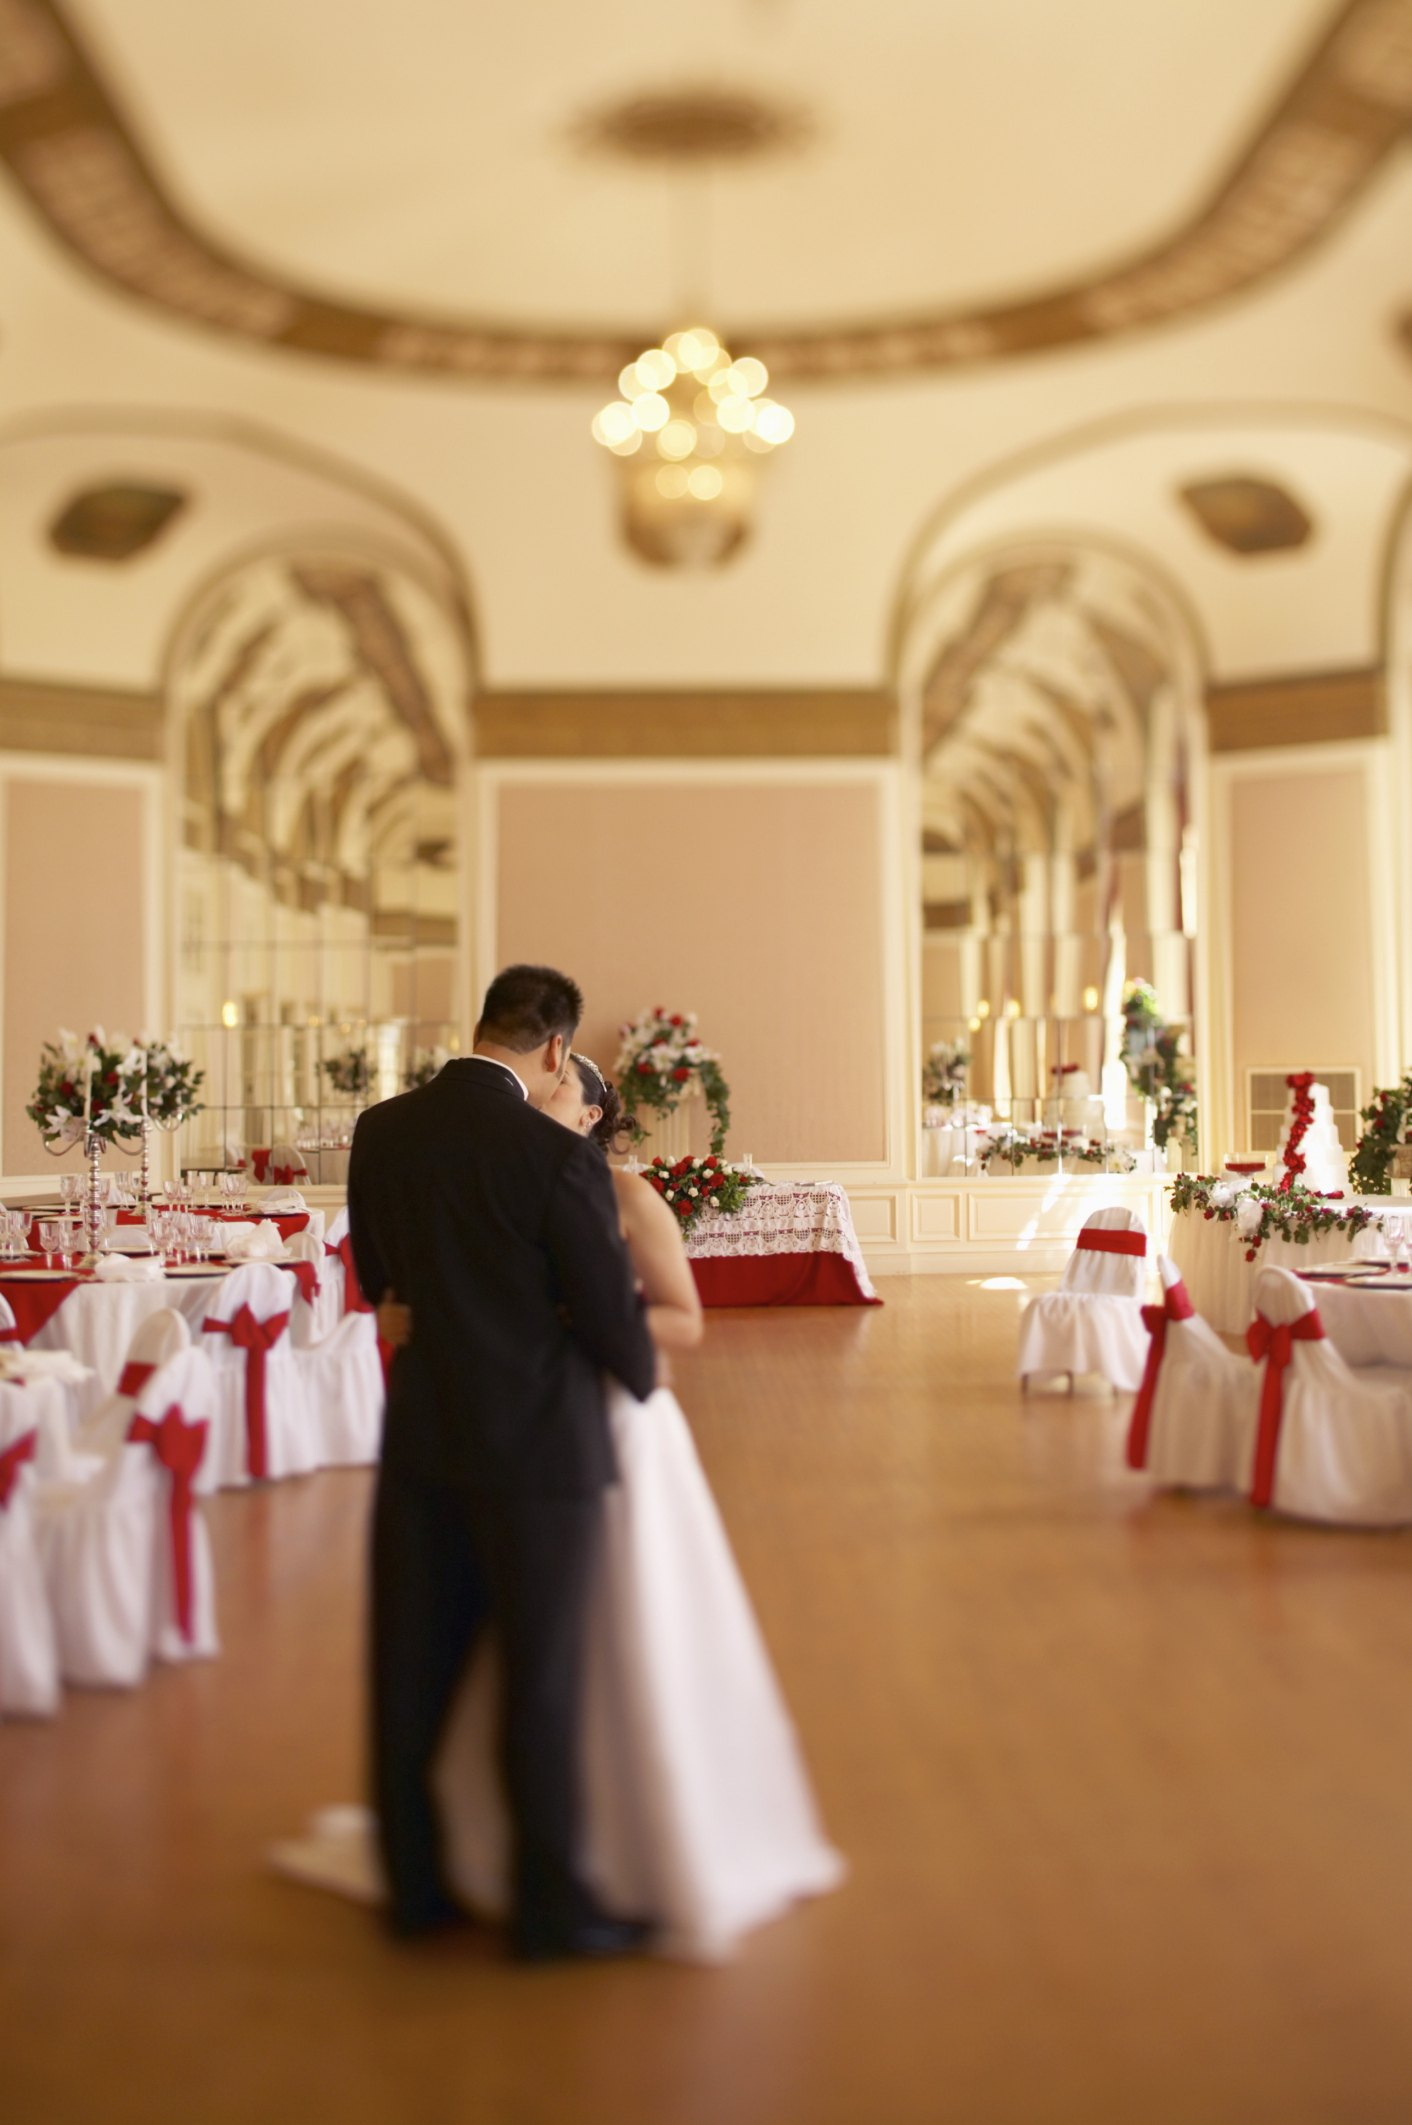 Do It Yourself Ceiling Decor Amp Draping For Weddings Ehow